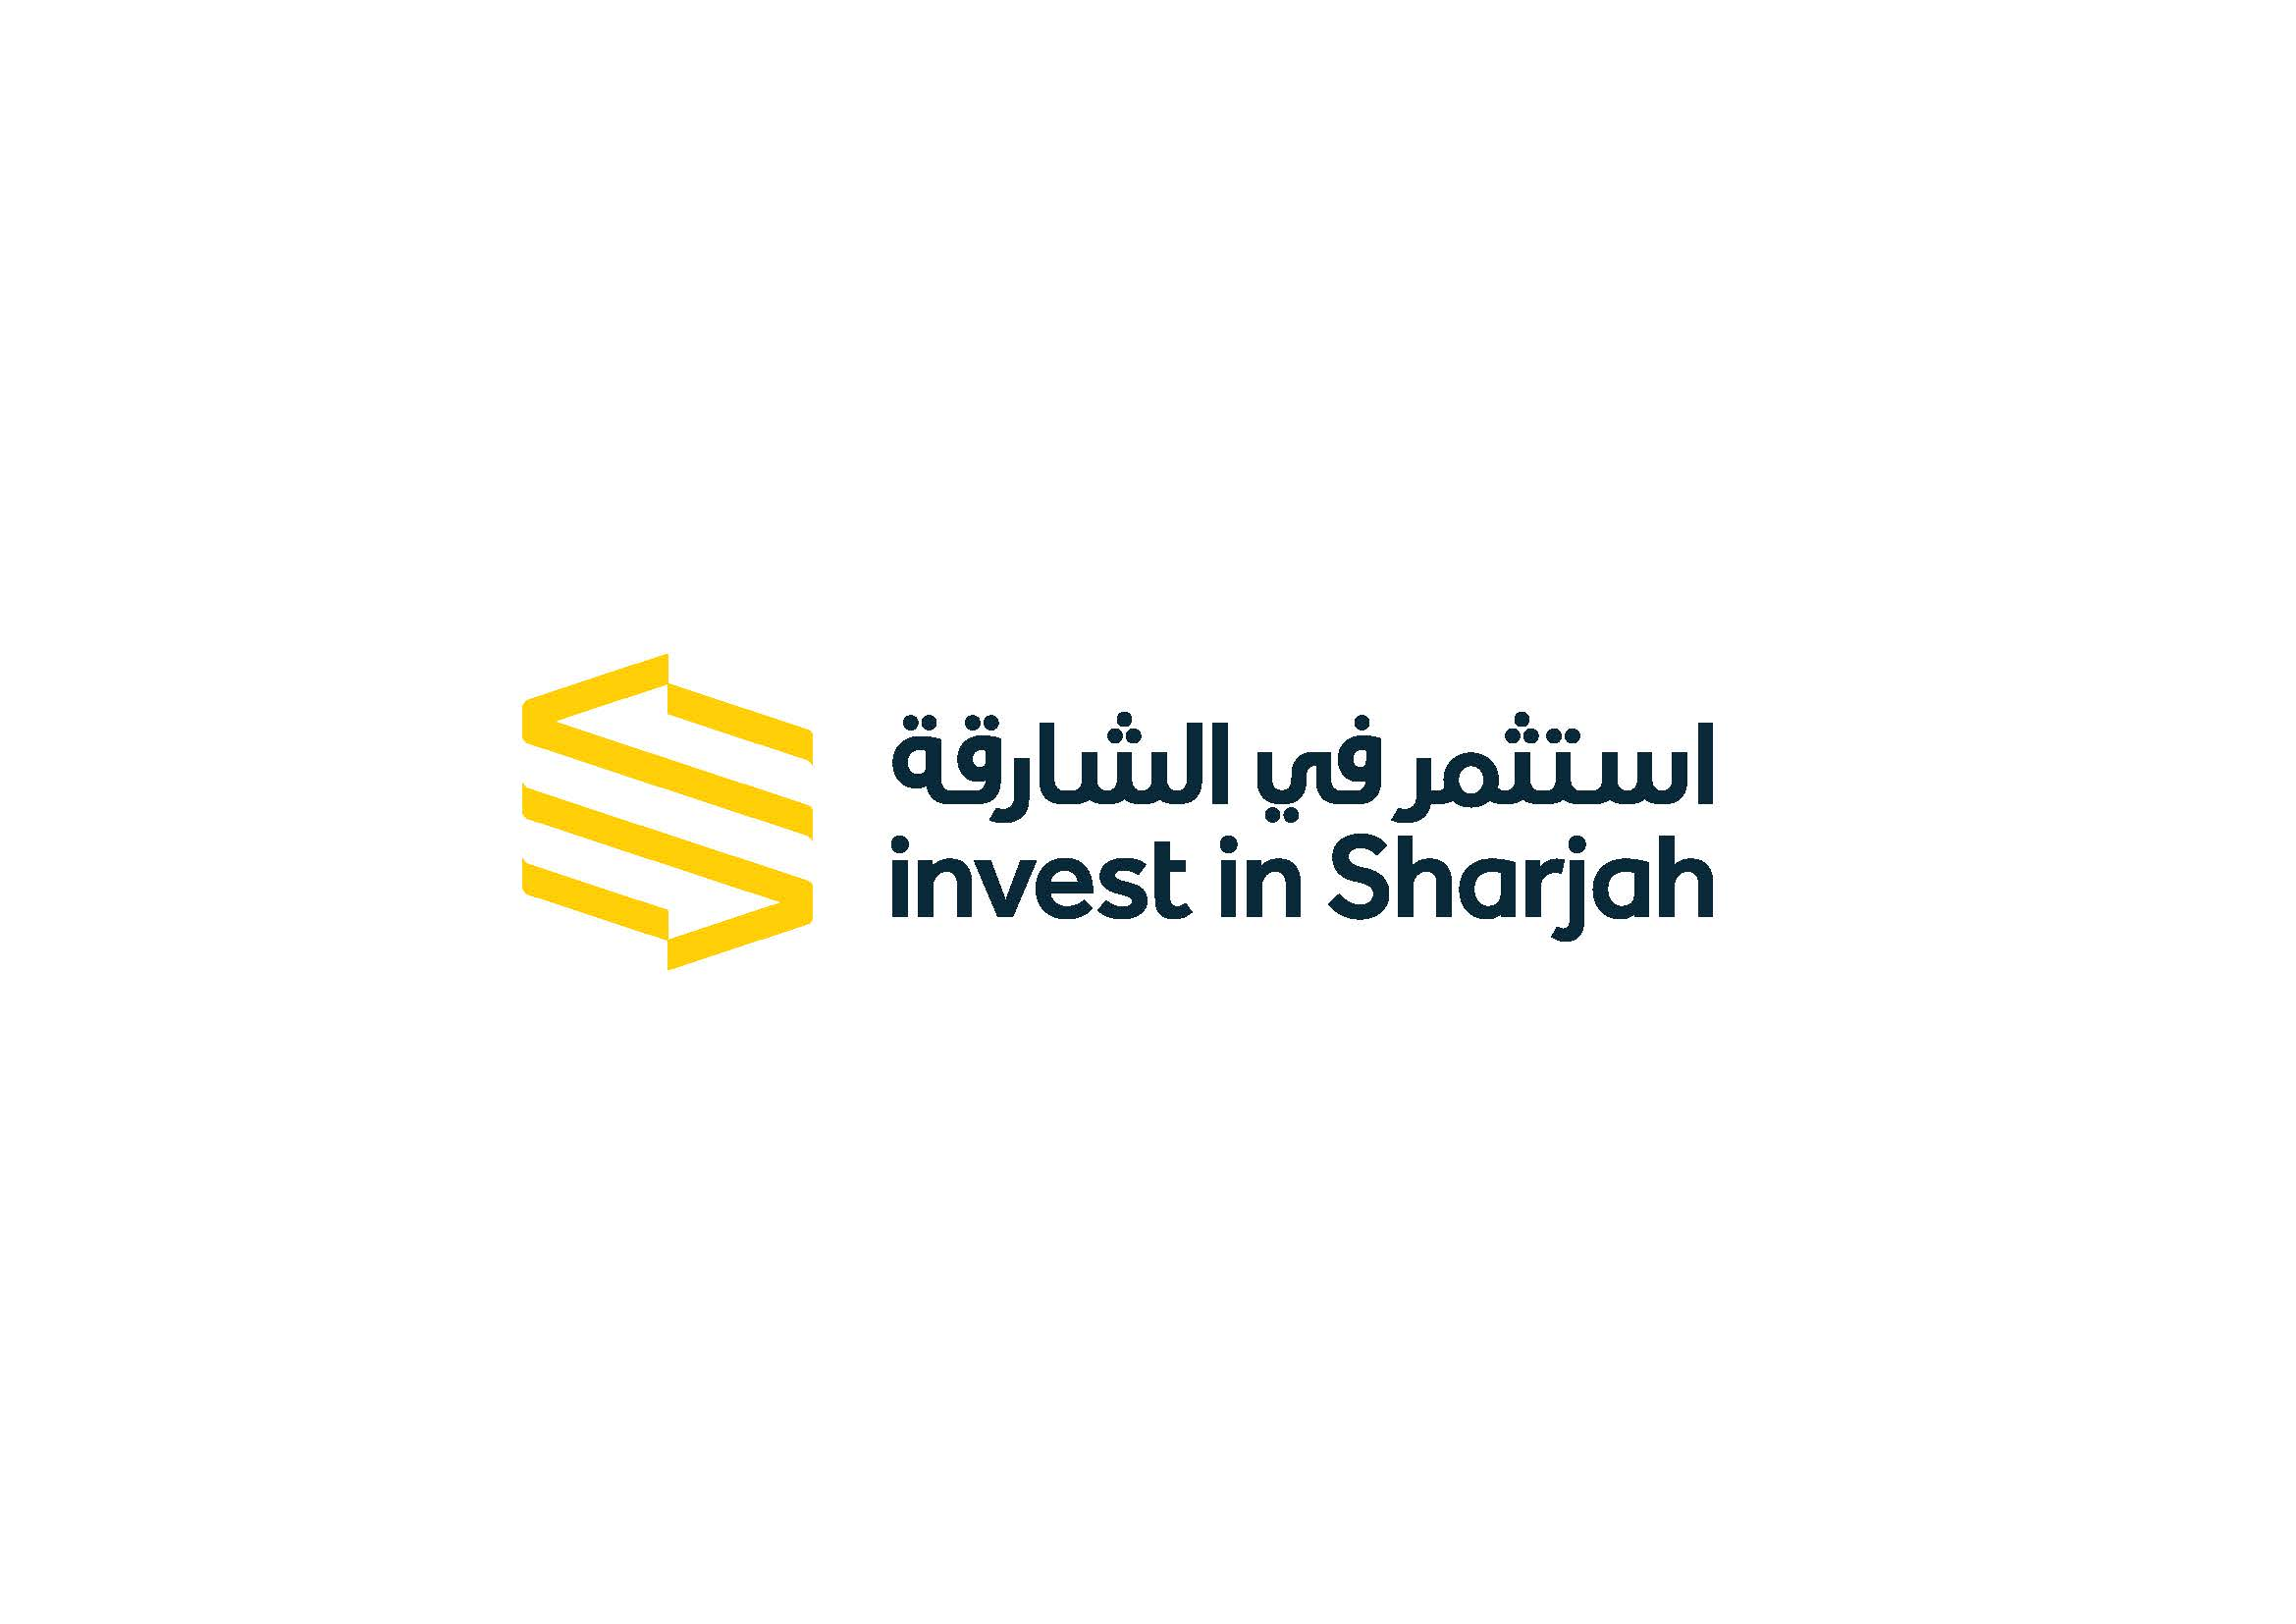 invest-in-sharjah-logo